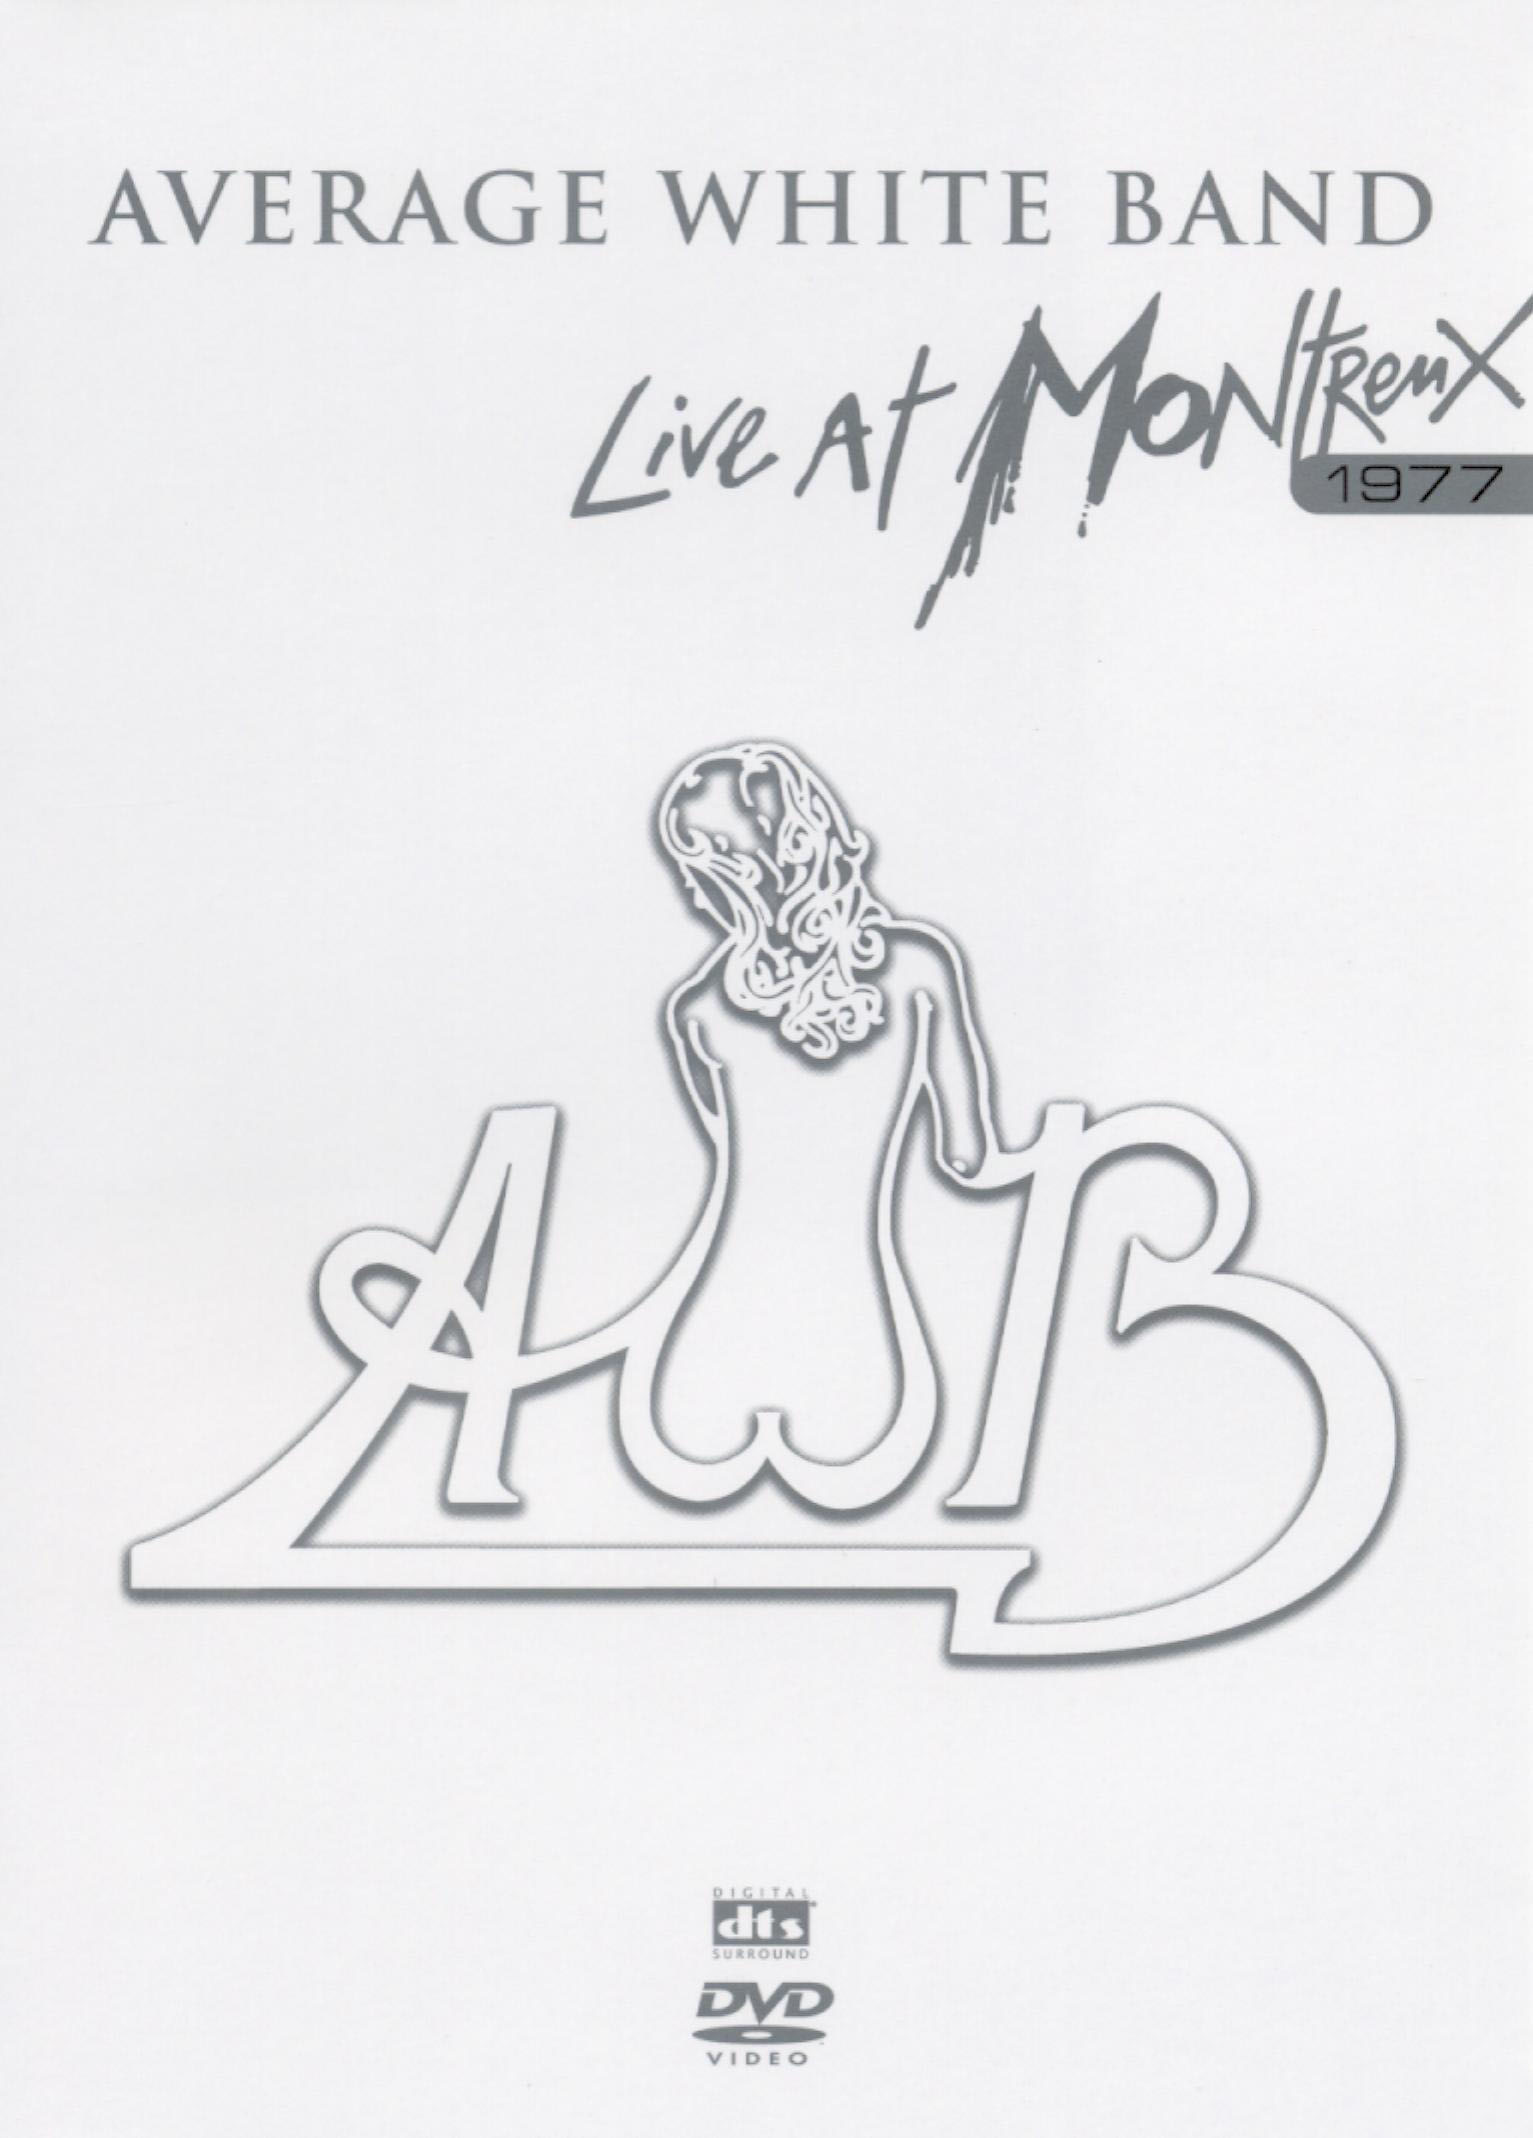 Average White Band: Live at Montreux, 1977